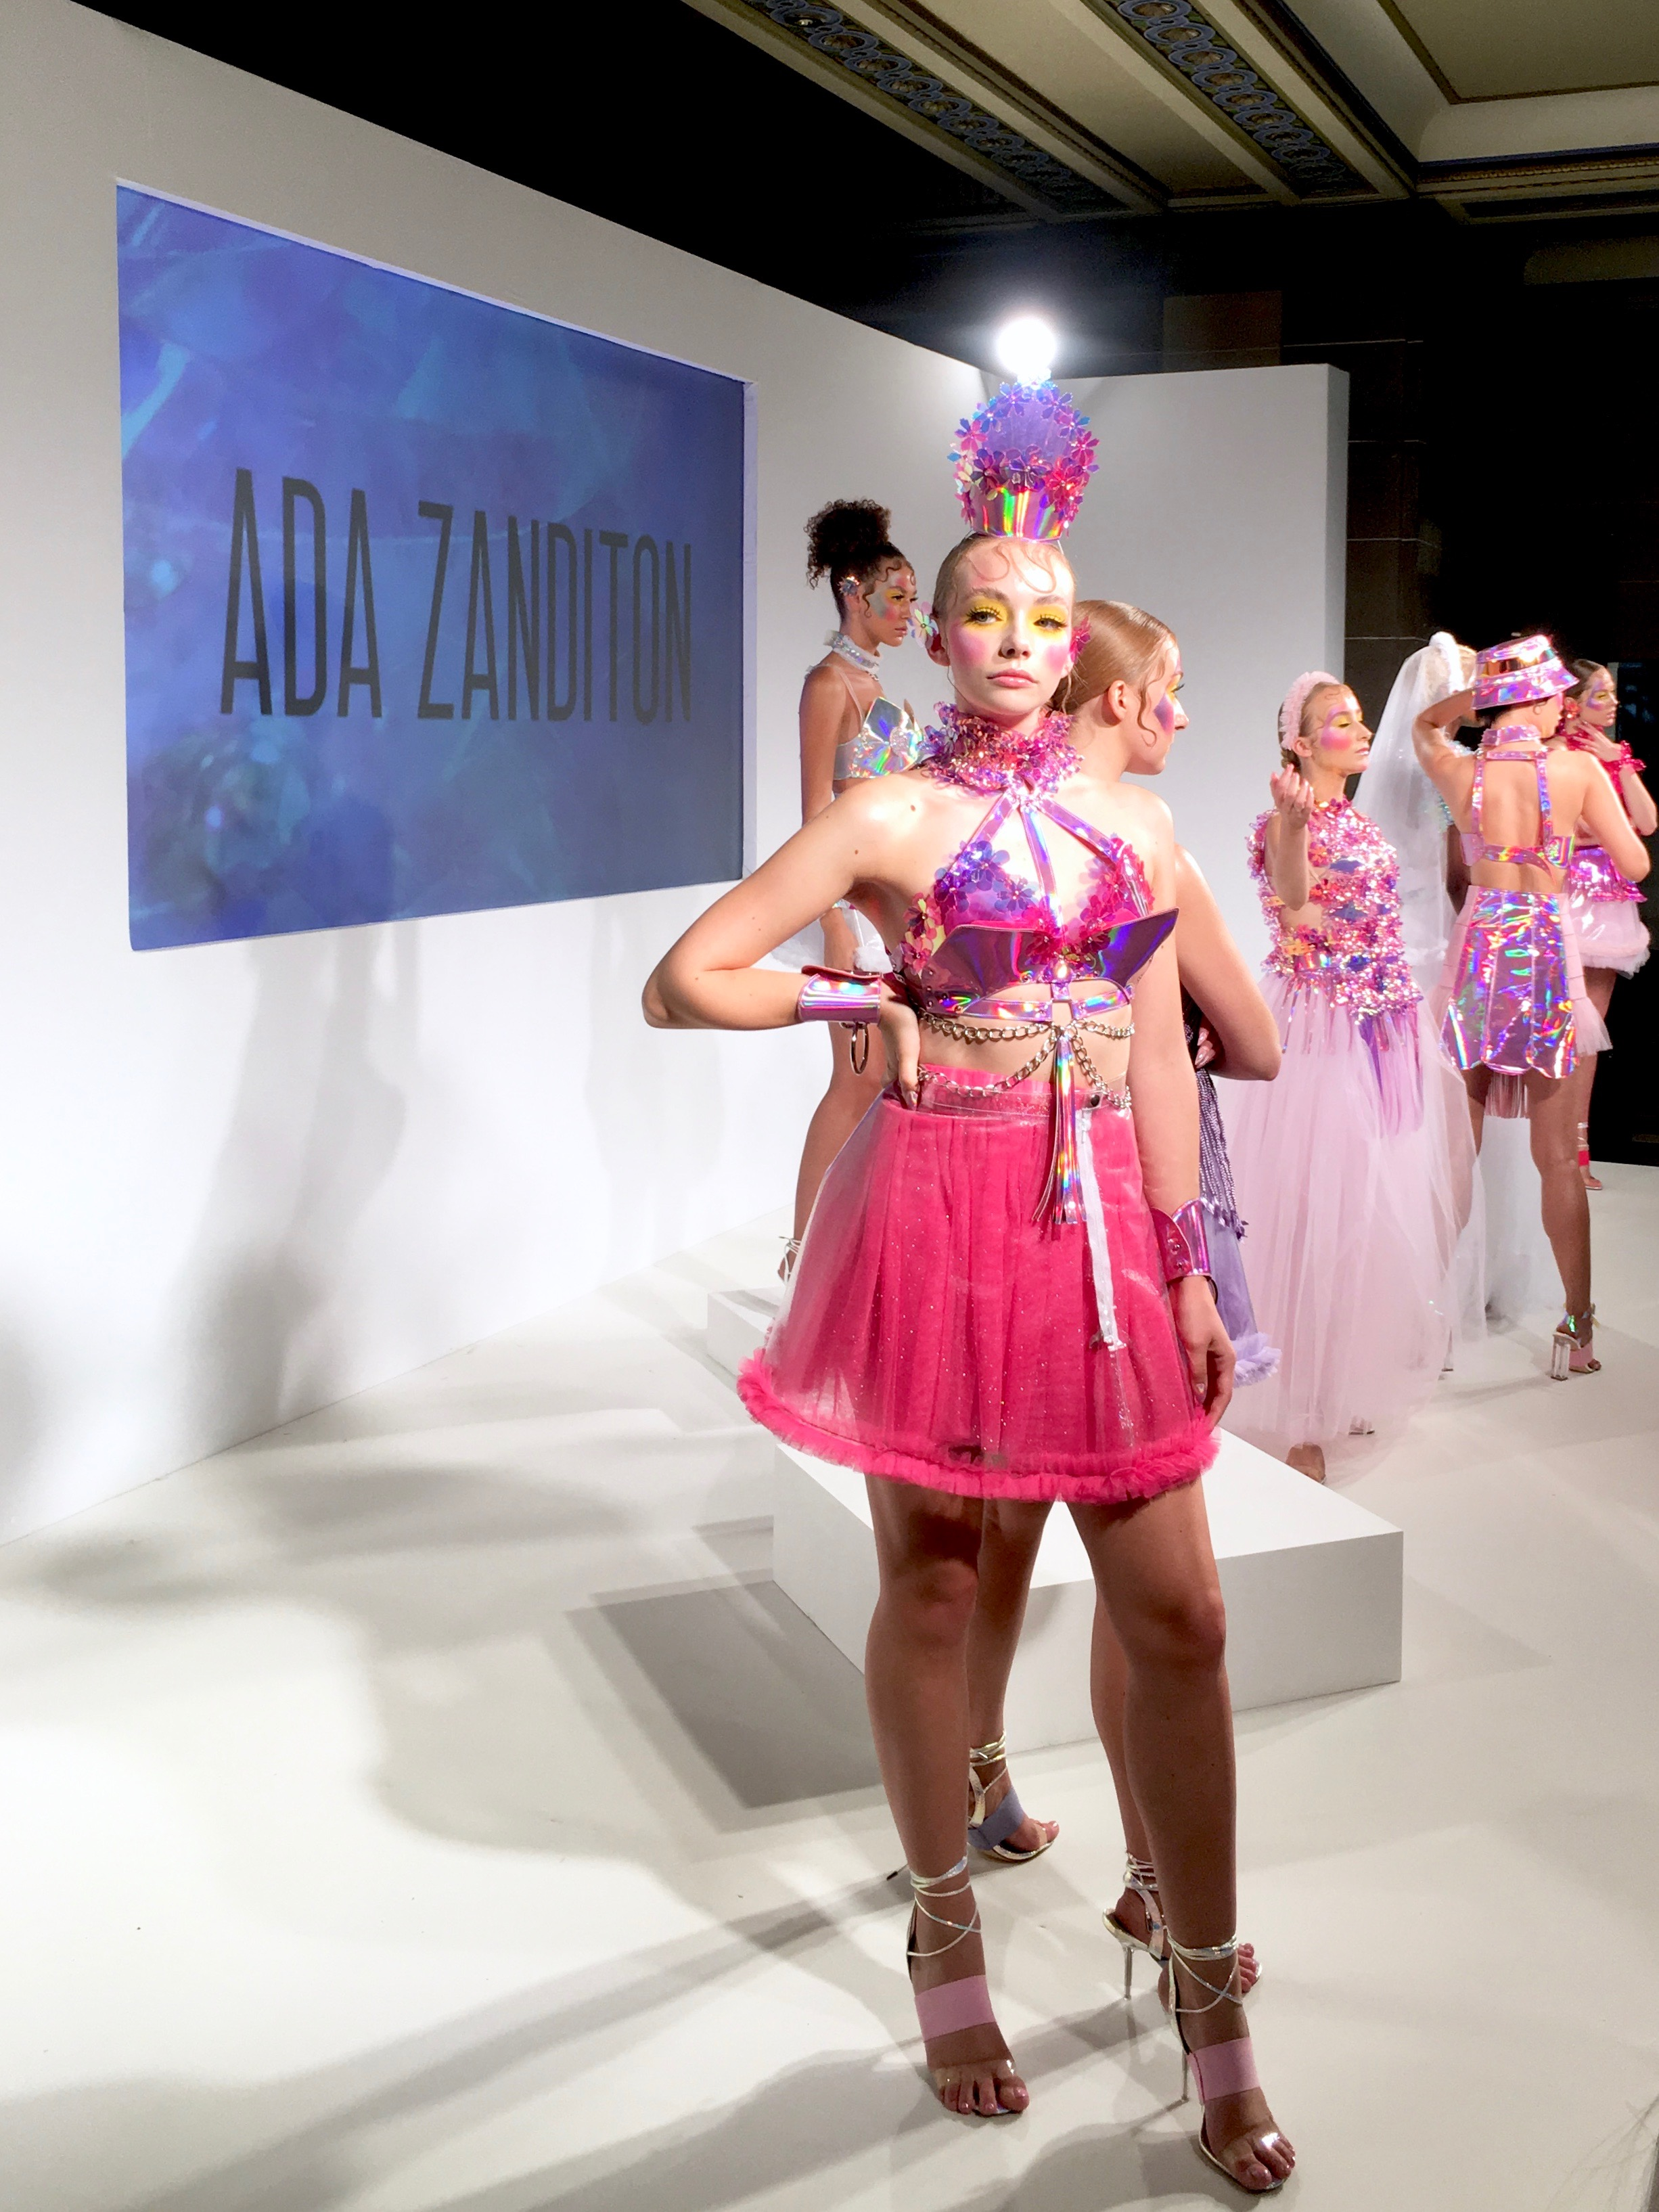 ada zandition - Next stop, the Ada Zandition accessories presentation, where popping pinks and purples were coupled with iridescent florals, metallic fringing and chain harnesses. There was a harmonious symmetry to the pieces that countered the sheer outrageousness of some, and made for an accessories collection NOT for the faint of heart.Colour lovers unite!